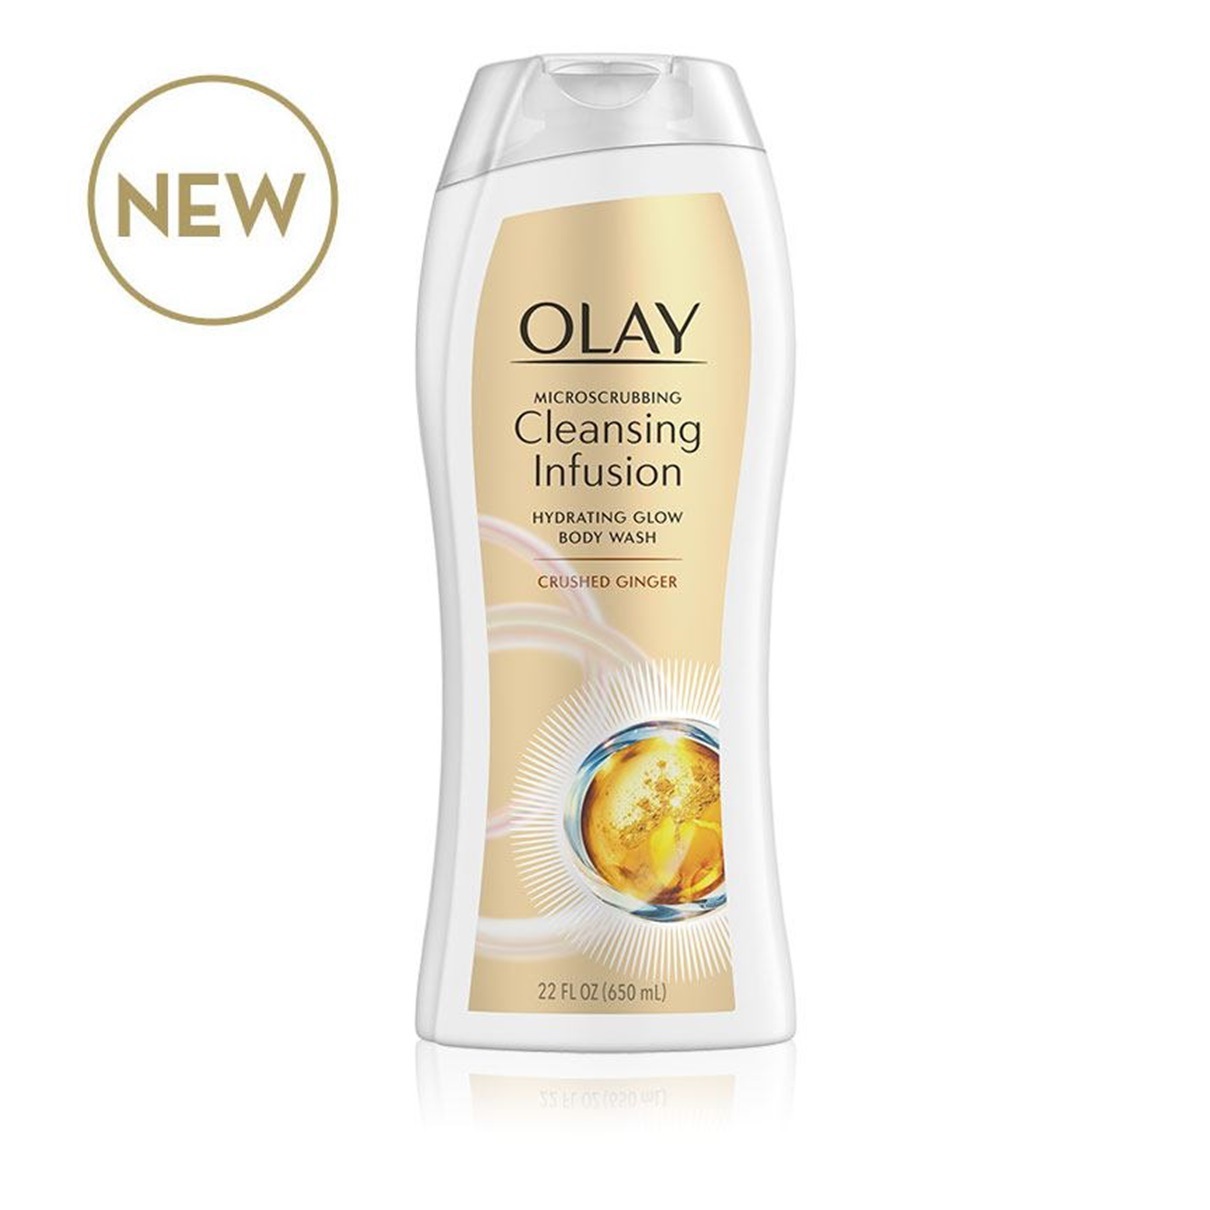 Olay Cleansing Infusion Body Washes With Deep Sea Kelp Crushed St Ives Salt Ampamp Pacific Exfoliating Wash 400ml Redefine Clean Microscrubbbing Hydrating Glow Ginger The Exclusive Formula Infuses A Non Stripping